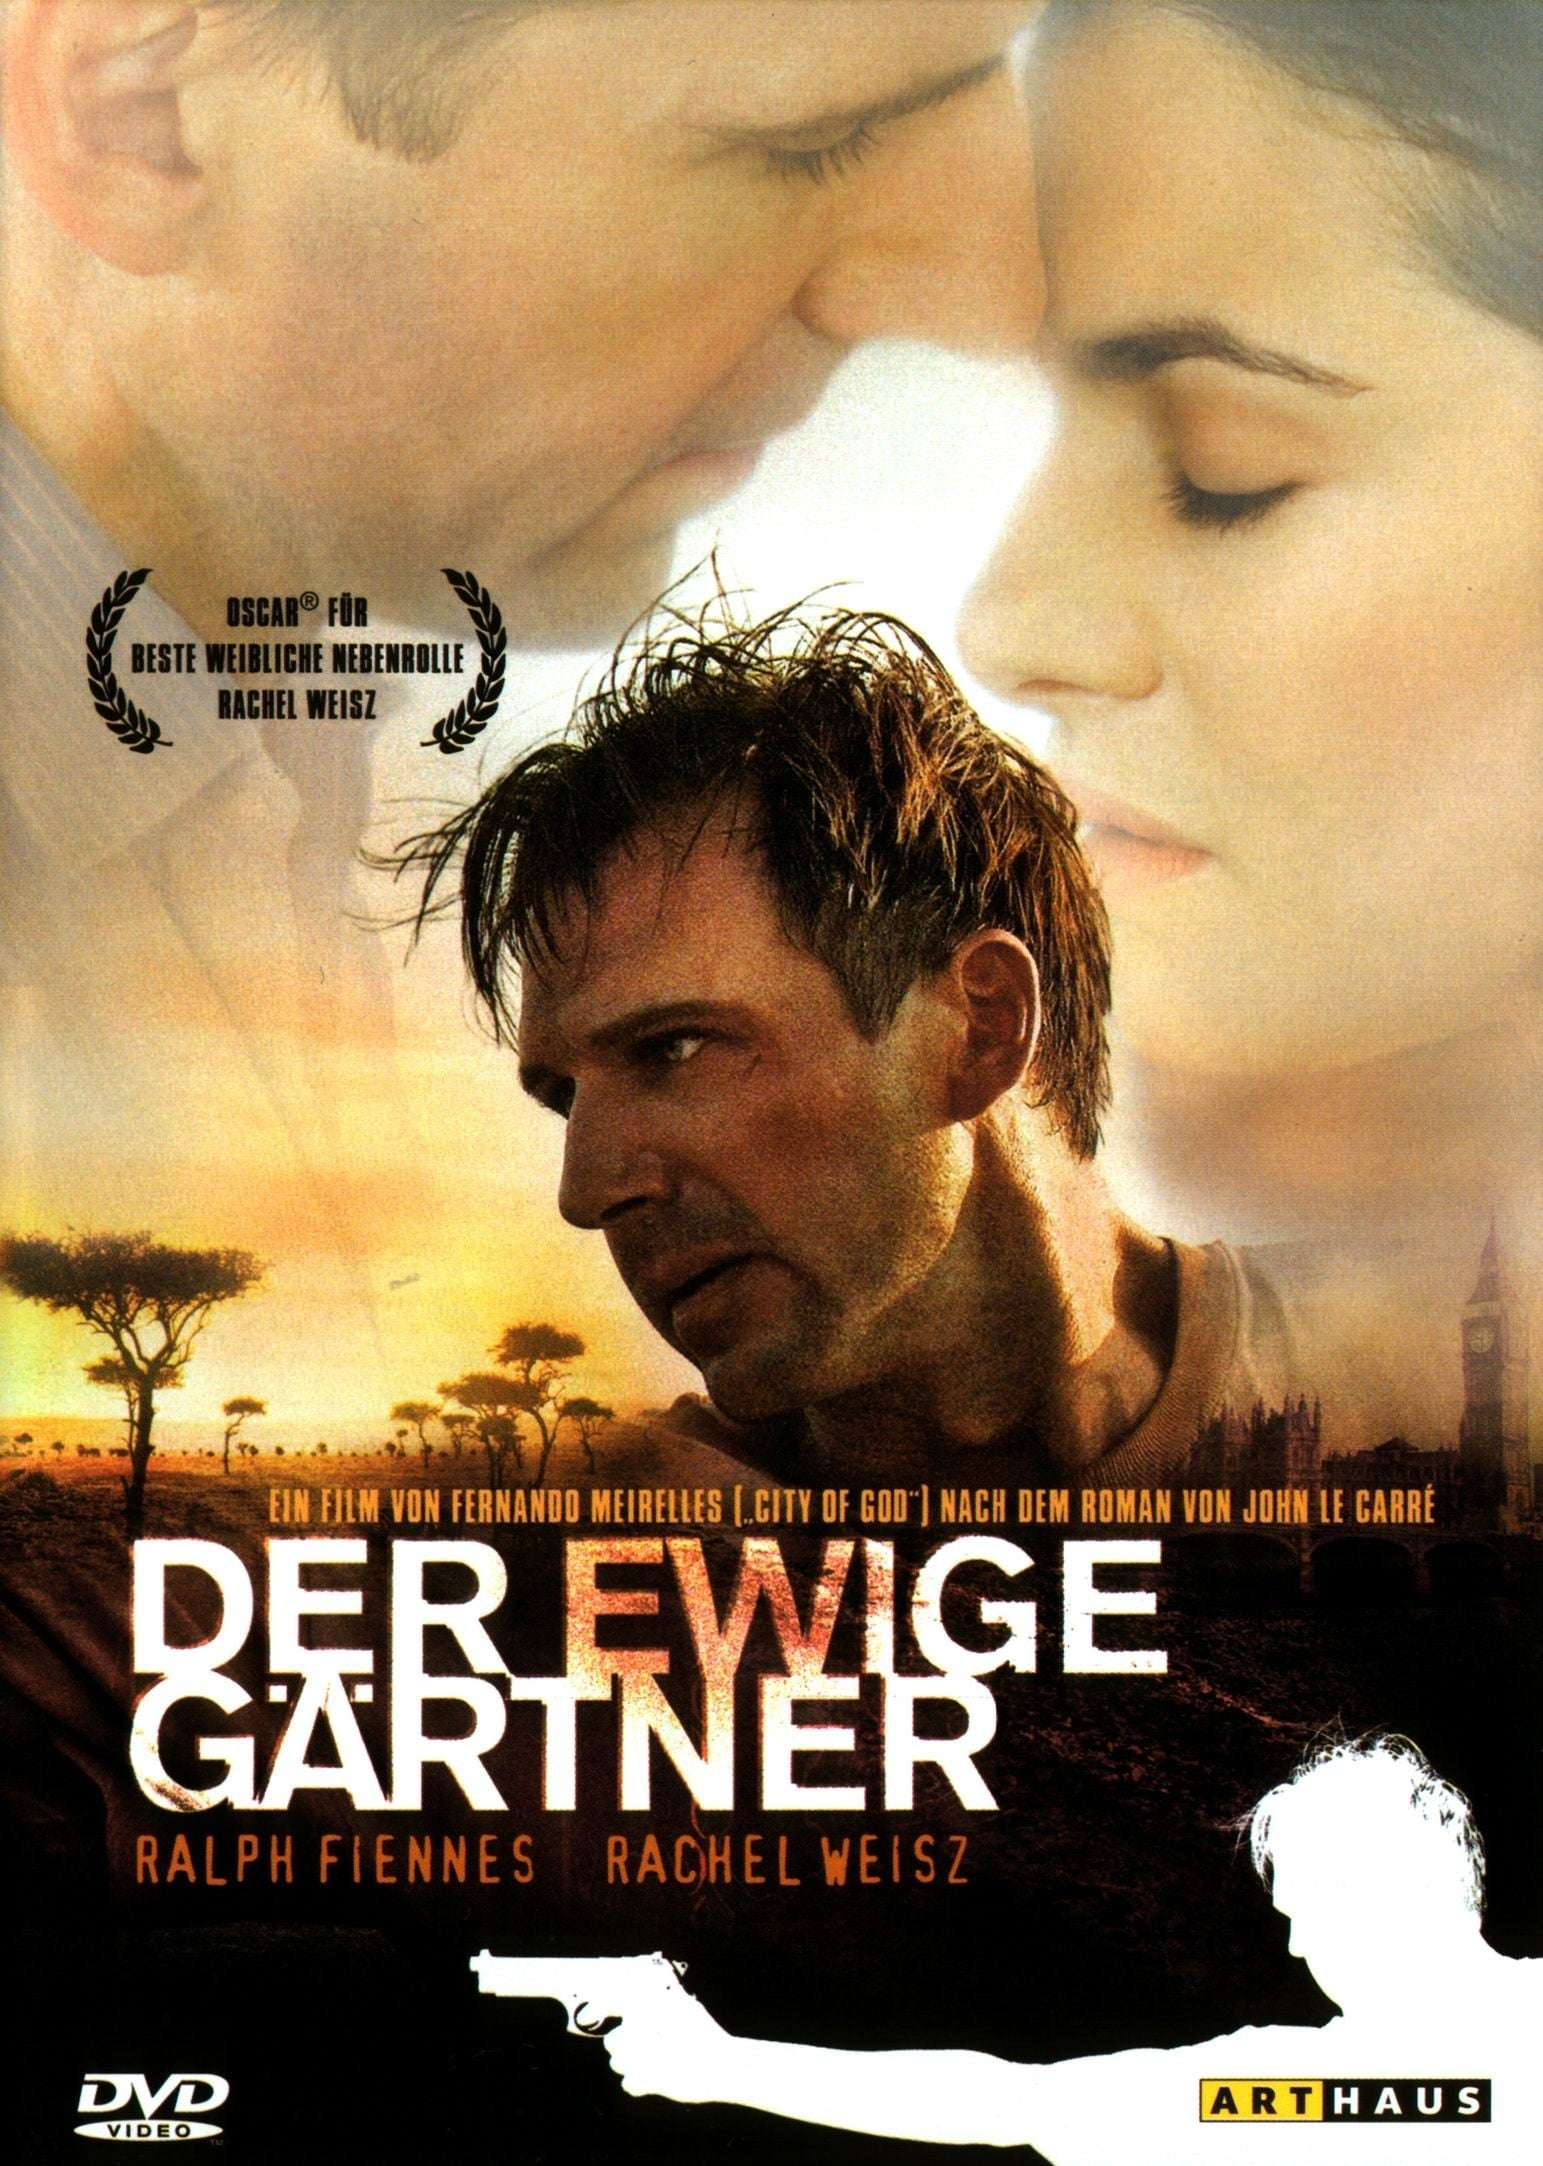 film review on constant gardener The constant gardener is a love story told in retrospect fiennes is justin, a shy the film is about betrayal, personal and political.